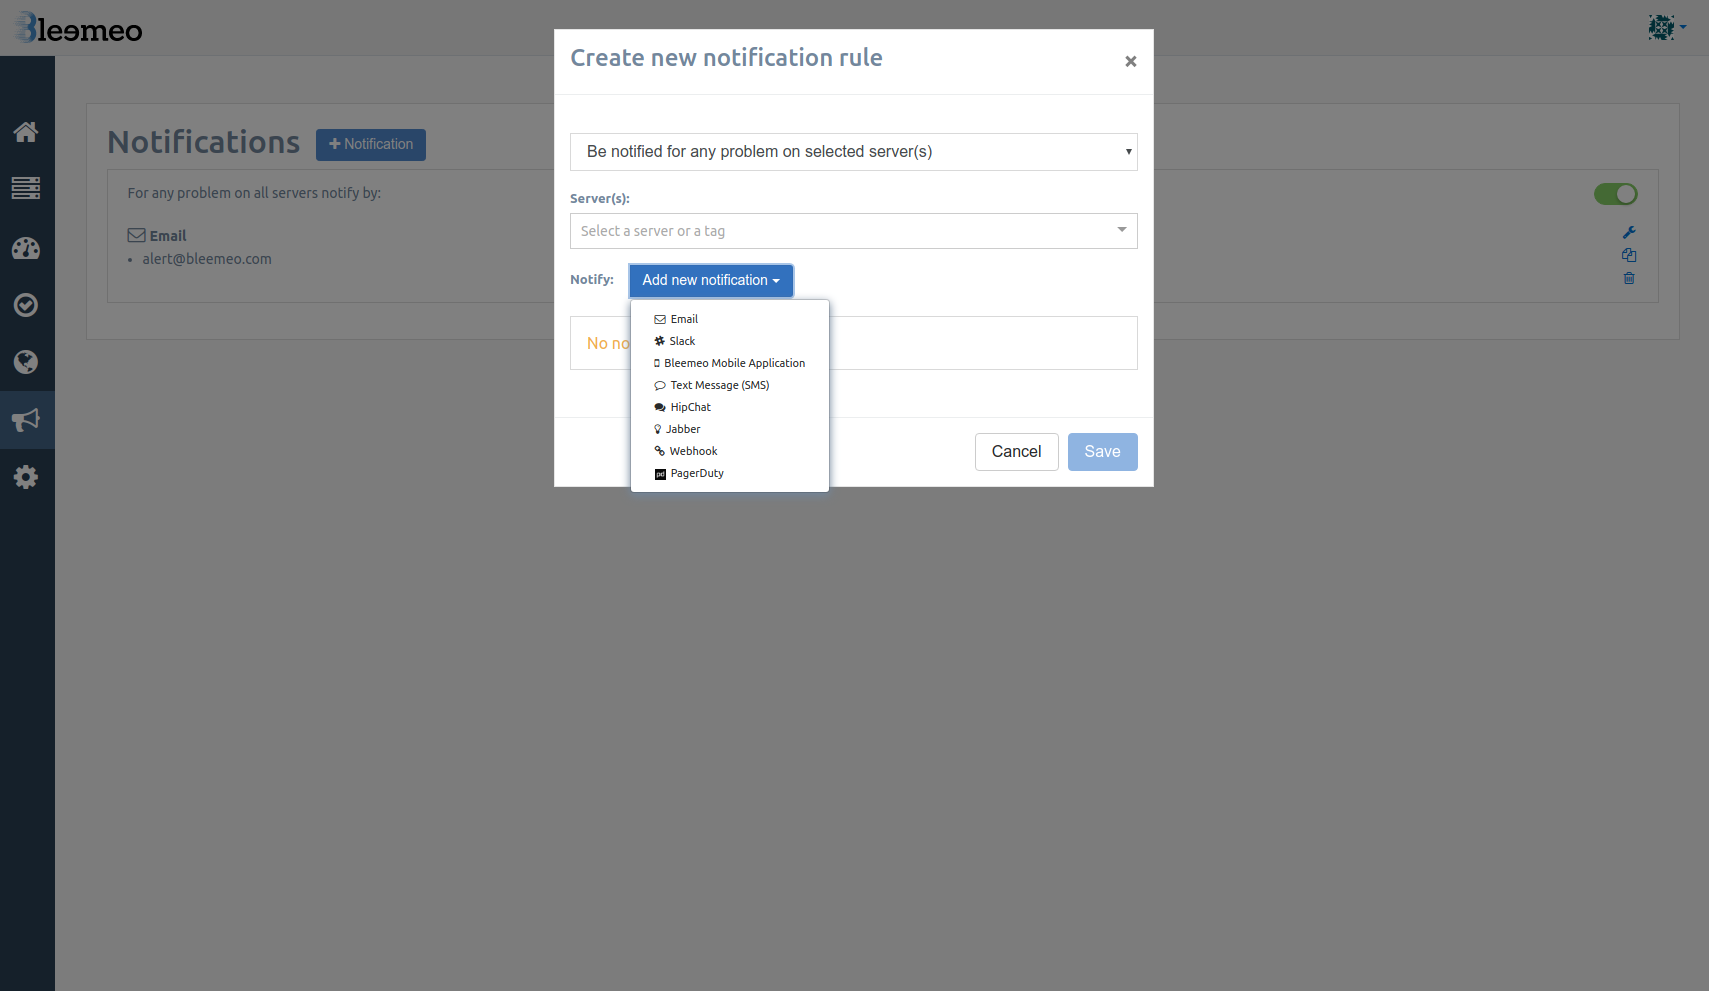 Alerting with Slack, Emails and mobile applications